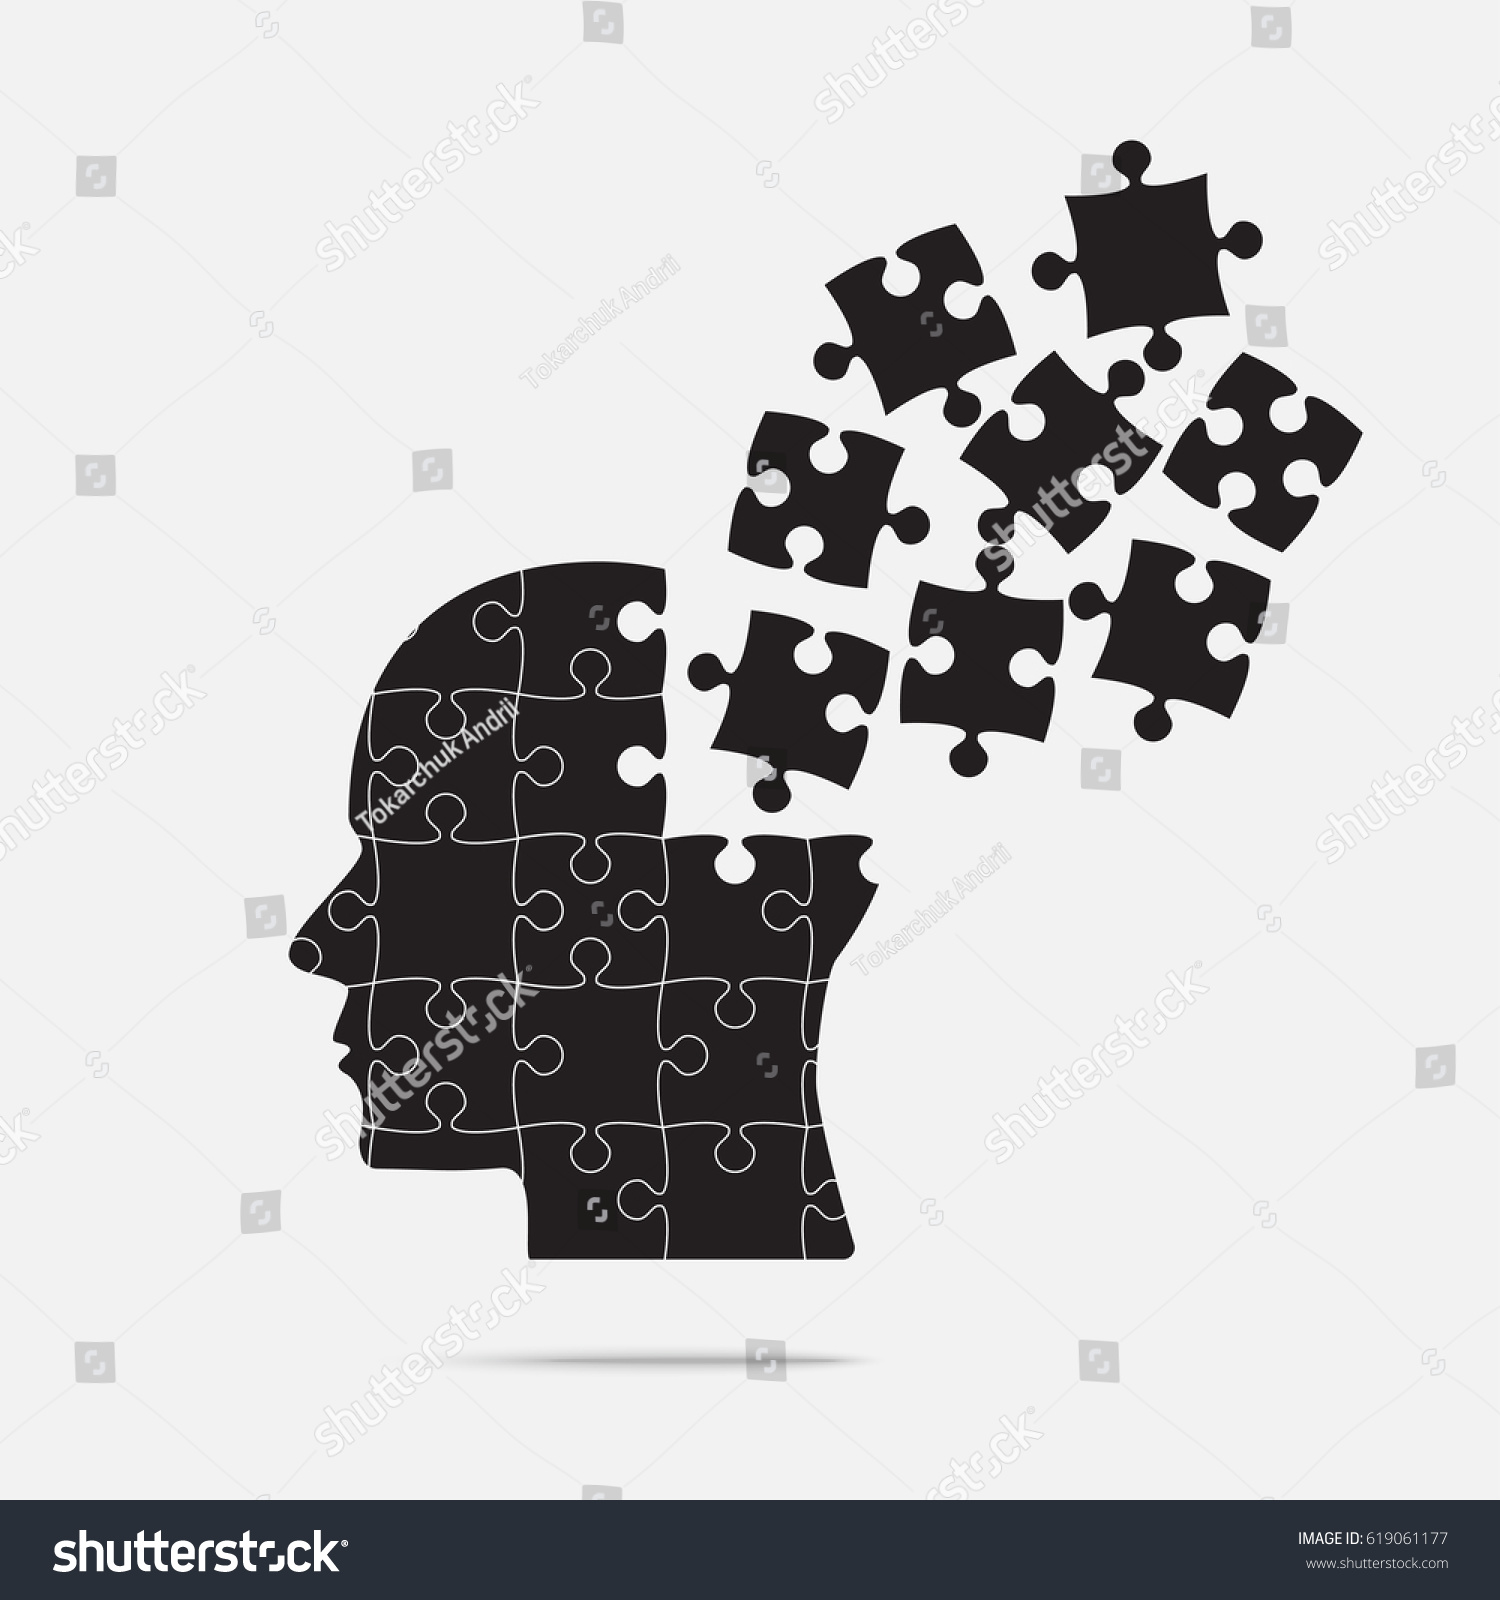 Black Puzzle Piece Silhouette Head Grey Stock Vector (Royalty Free ...